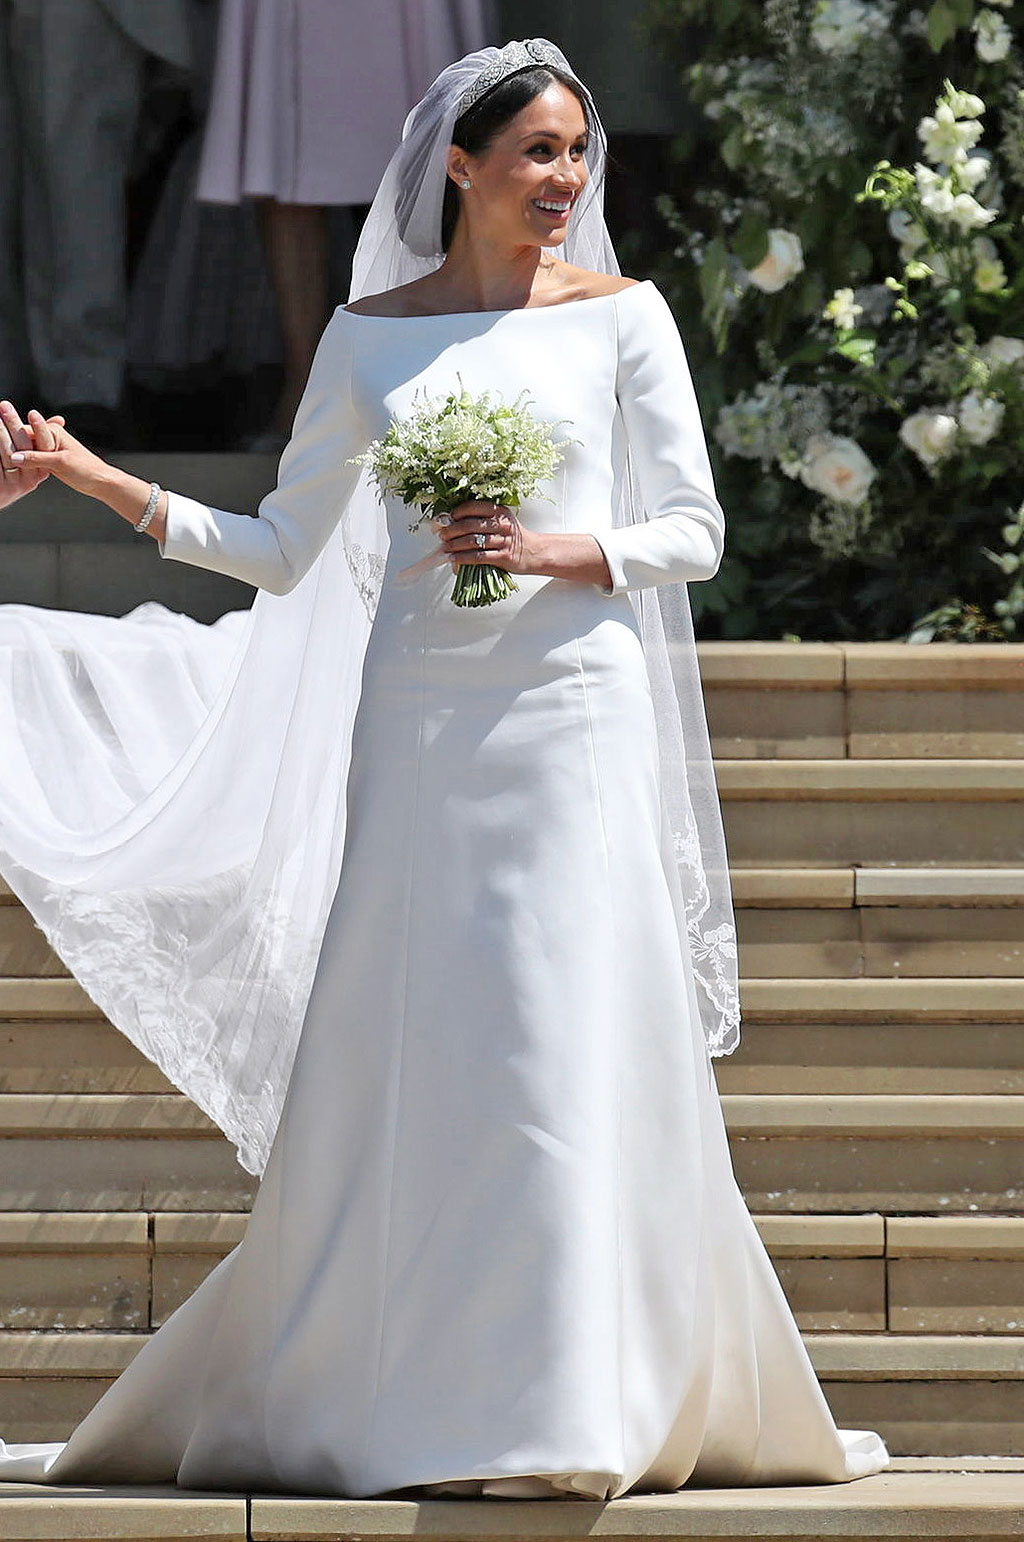 très chic!: Wedding dresses inspired by Meghan Markle\'s Givenchy dress